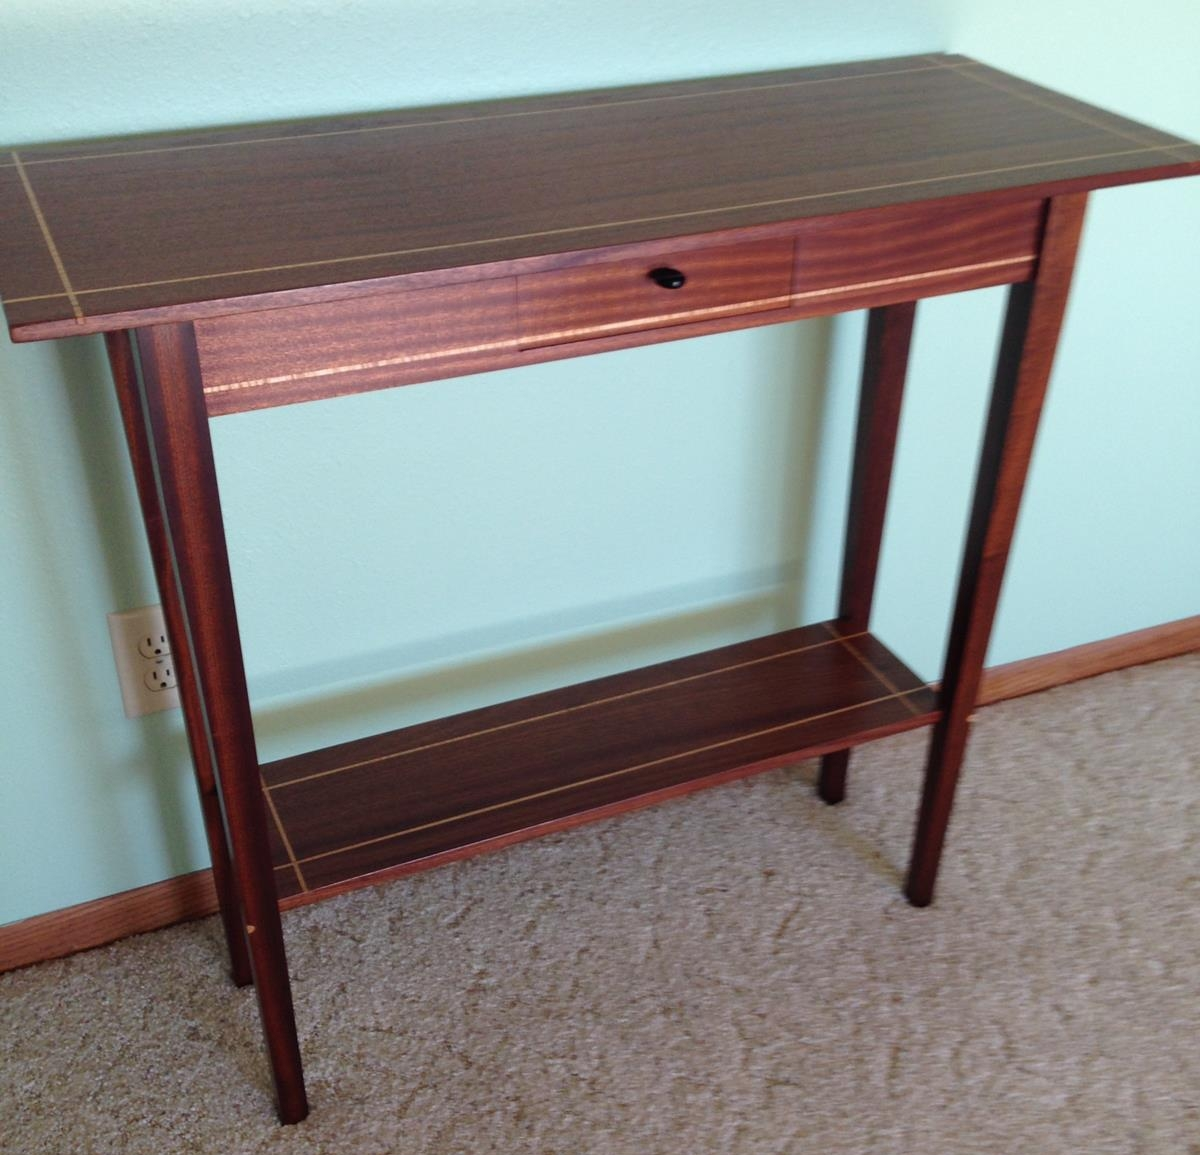 Side Table - Sapele with Figured Maple Inlay